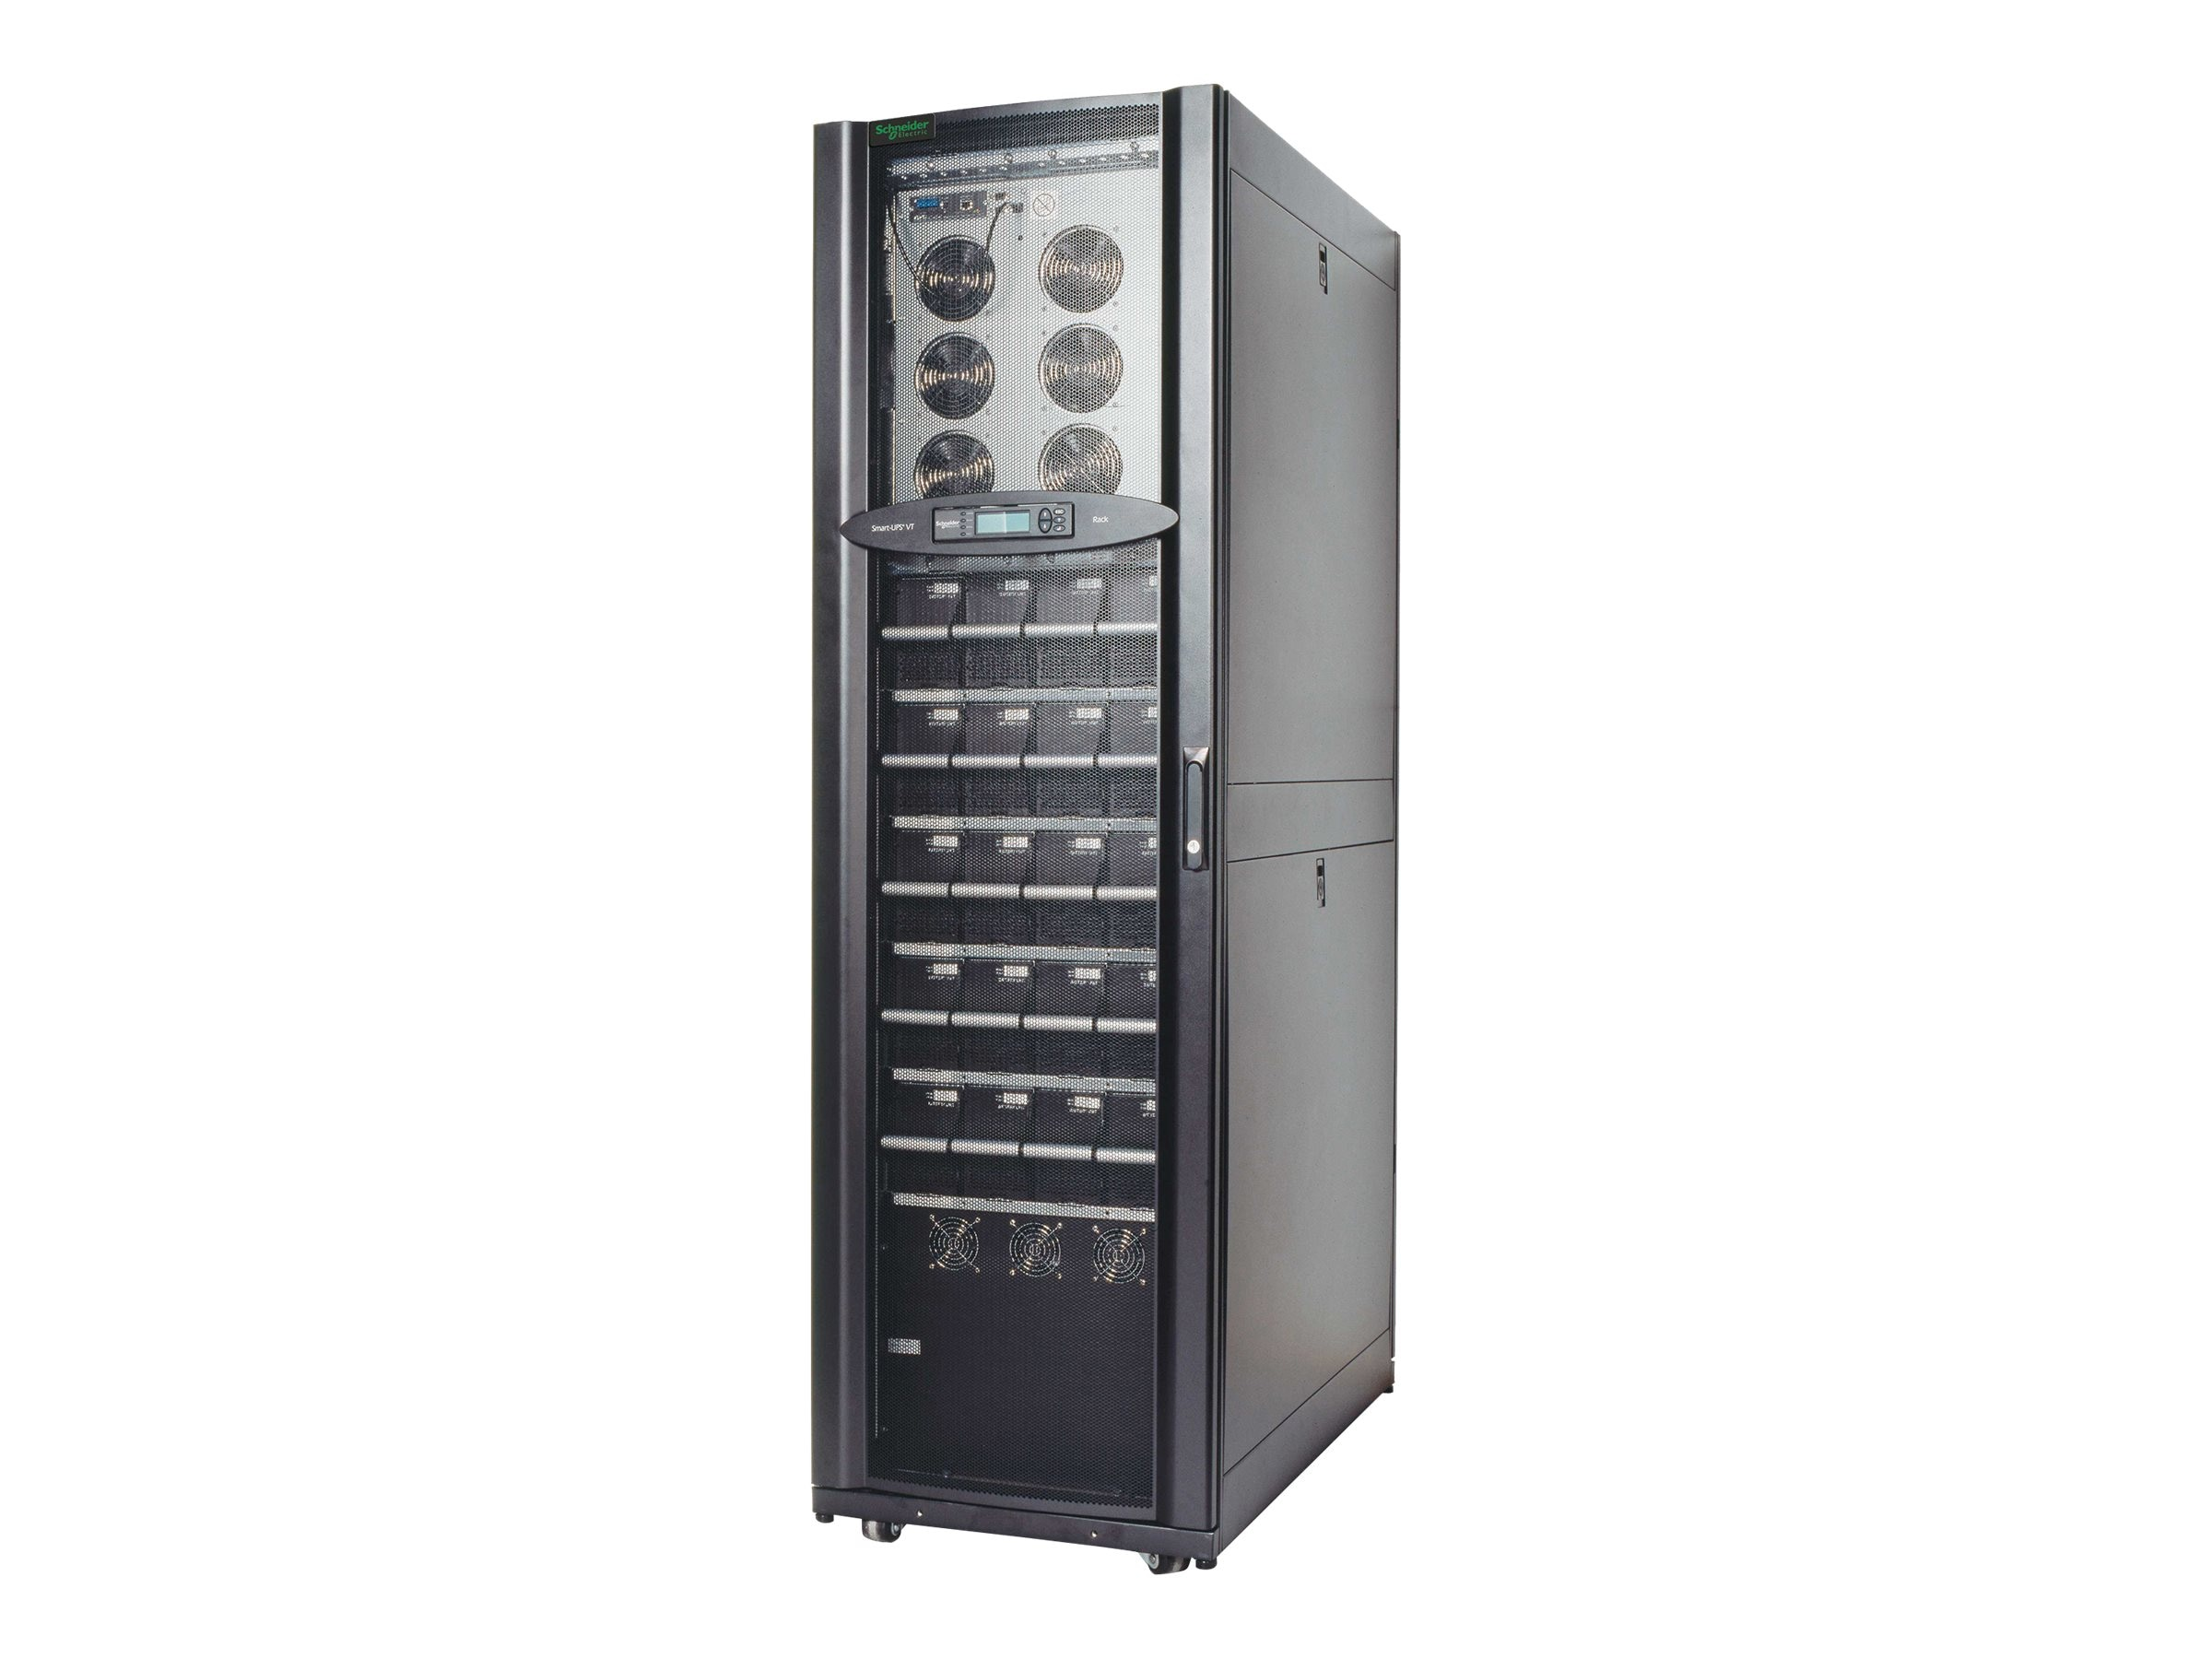 APC Smart-UPS VT Rack Mounted 30kVA 480V Input, 208V Output (4) Battery Mod. Exp. to (5), PDU, Startup, SUVTR30KG4B5S, 8100495, Battery Backup/UPS